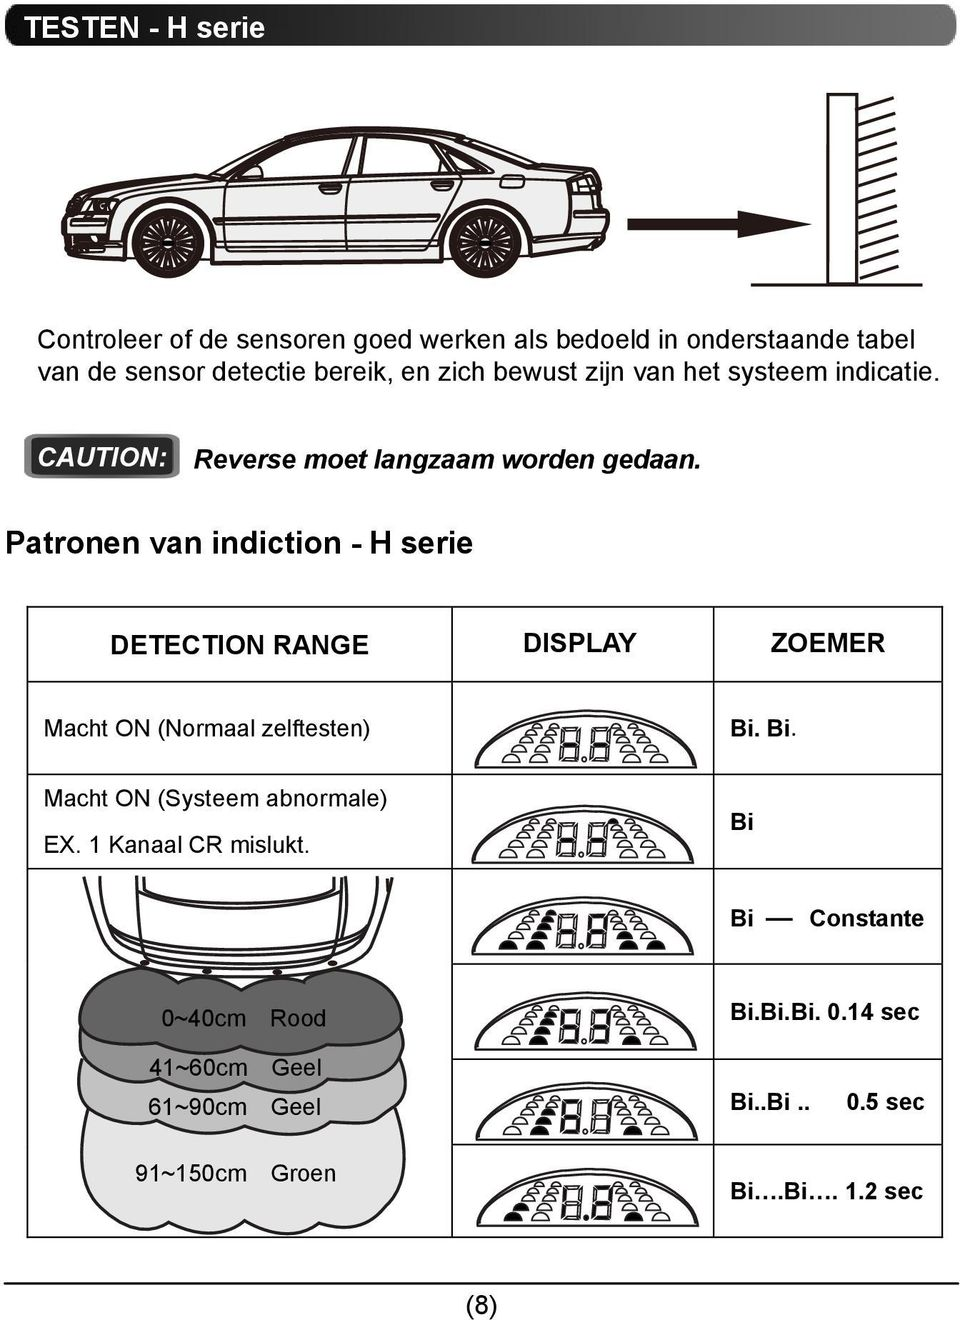 Patronen van indiction - H serie DETECTION RANGE DISPLAY ZOEMER Macht ON (Normaal zelftesten) Bi.